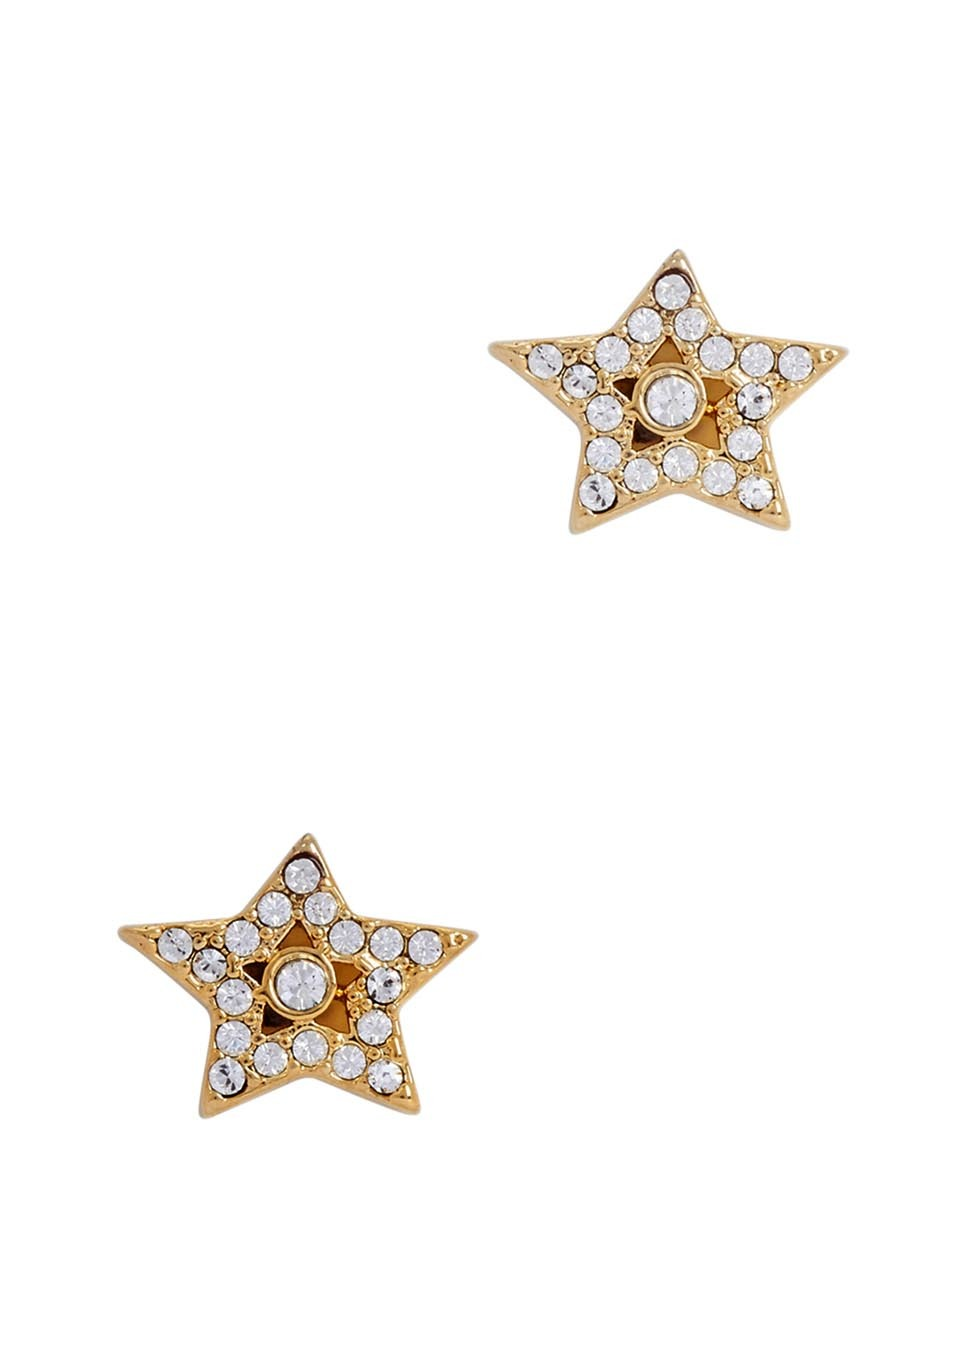 Gold Tone Star Stud Earrings - predominant colour: gold; occasions: casual, evening, creative work; style: stud; length: short; size: small/fine; material: chain/metal; fastening: pierced; finish: metallic; embellishment: crystals/glass; season: a/w 2016